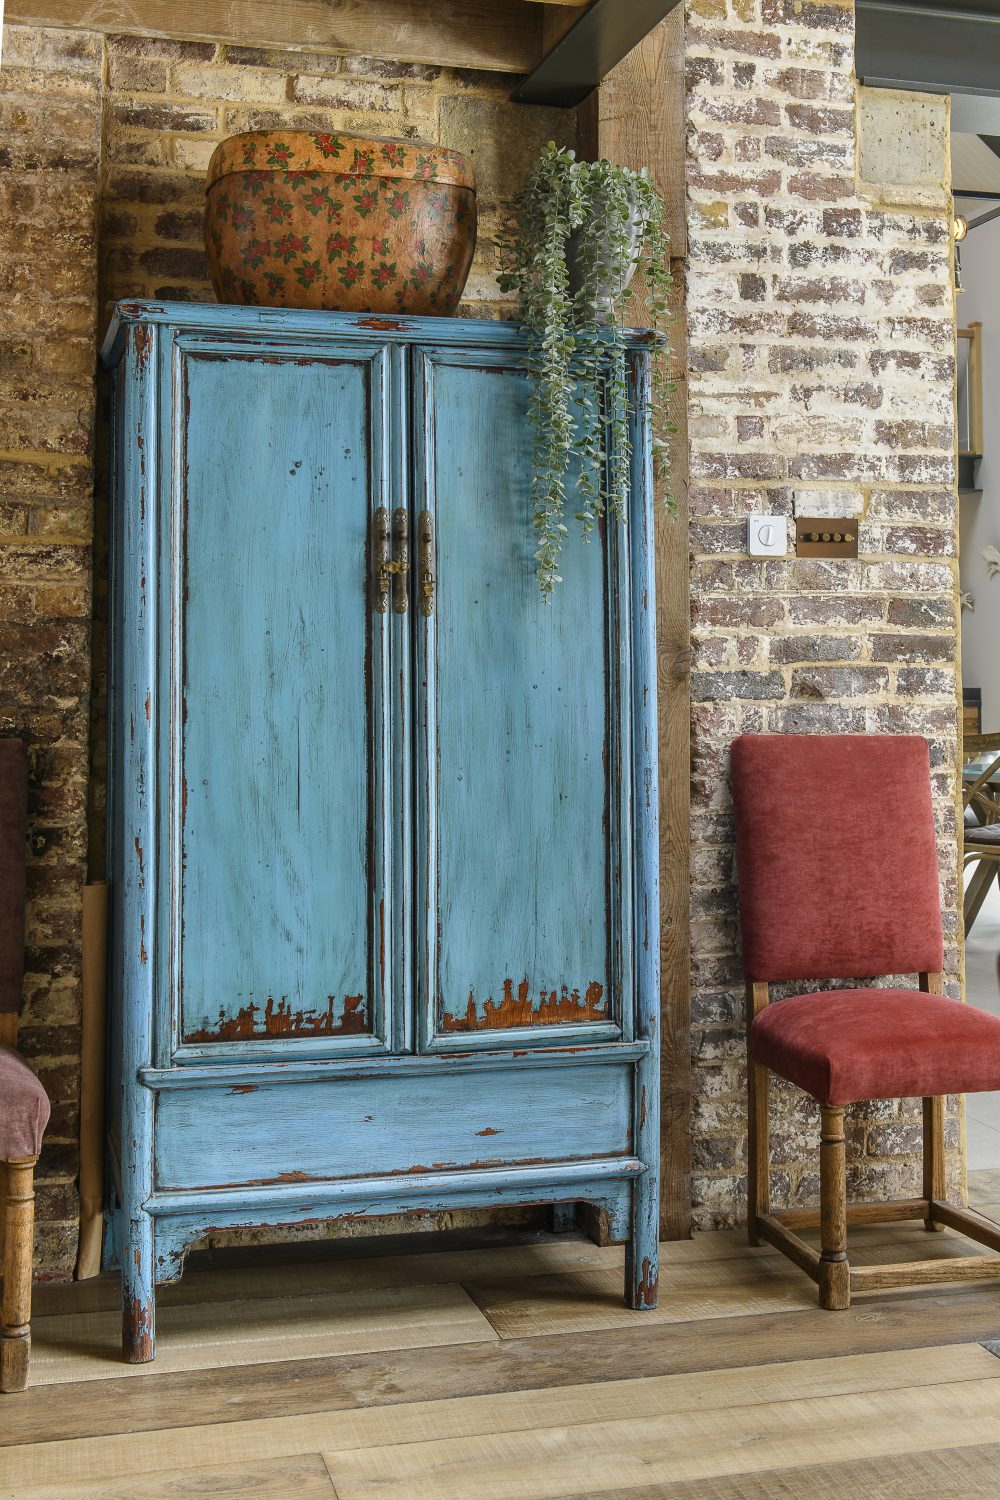 """A bright turquoise Chinese cupboard is one of the many Asian influences throughout the barn. """"I've had that cupboard for so many years,"""" says the owner. """"It follows me everywhere!"""""""